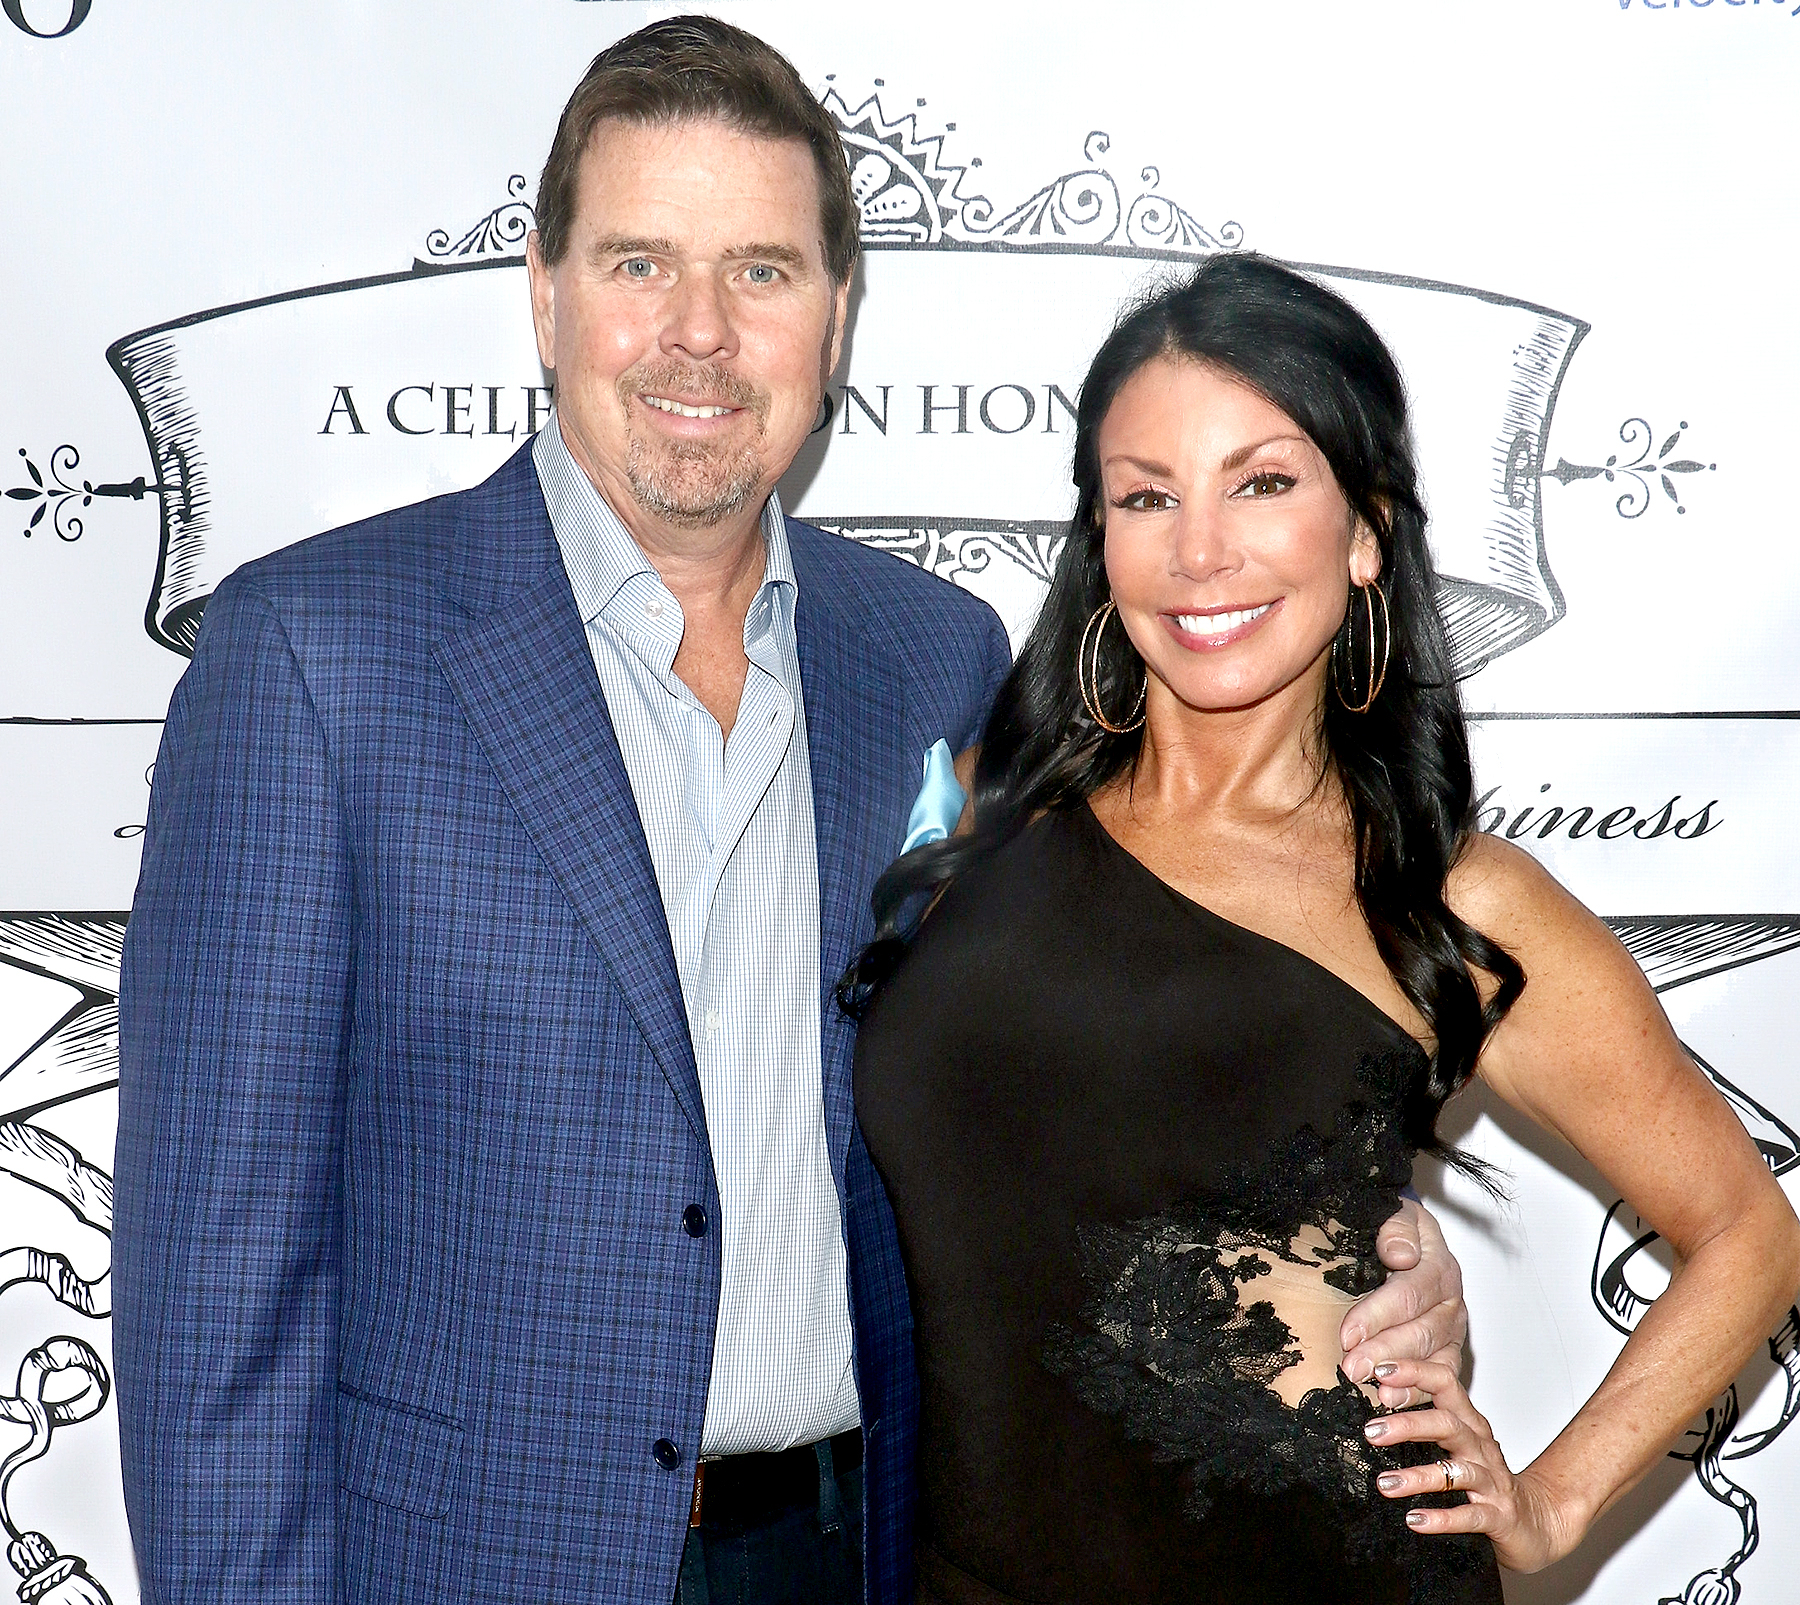 Marty Caffrey and Danielle Staub attend Staub's housewarming party on January 14, 2017 in Edgewater, New Jersey.